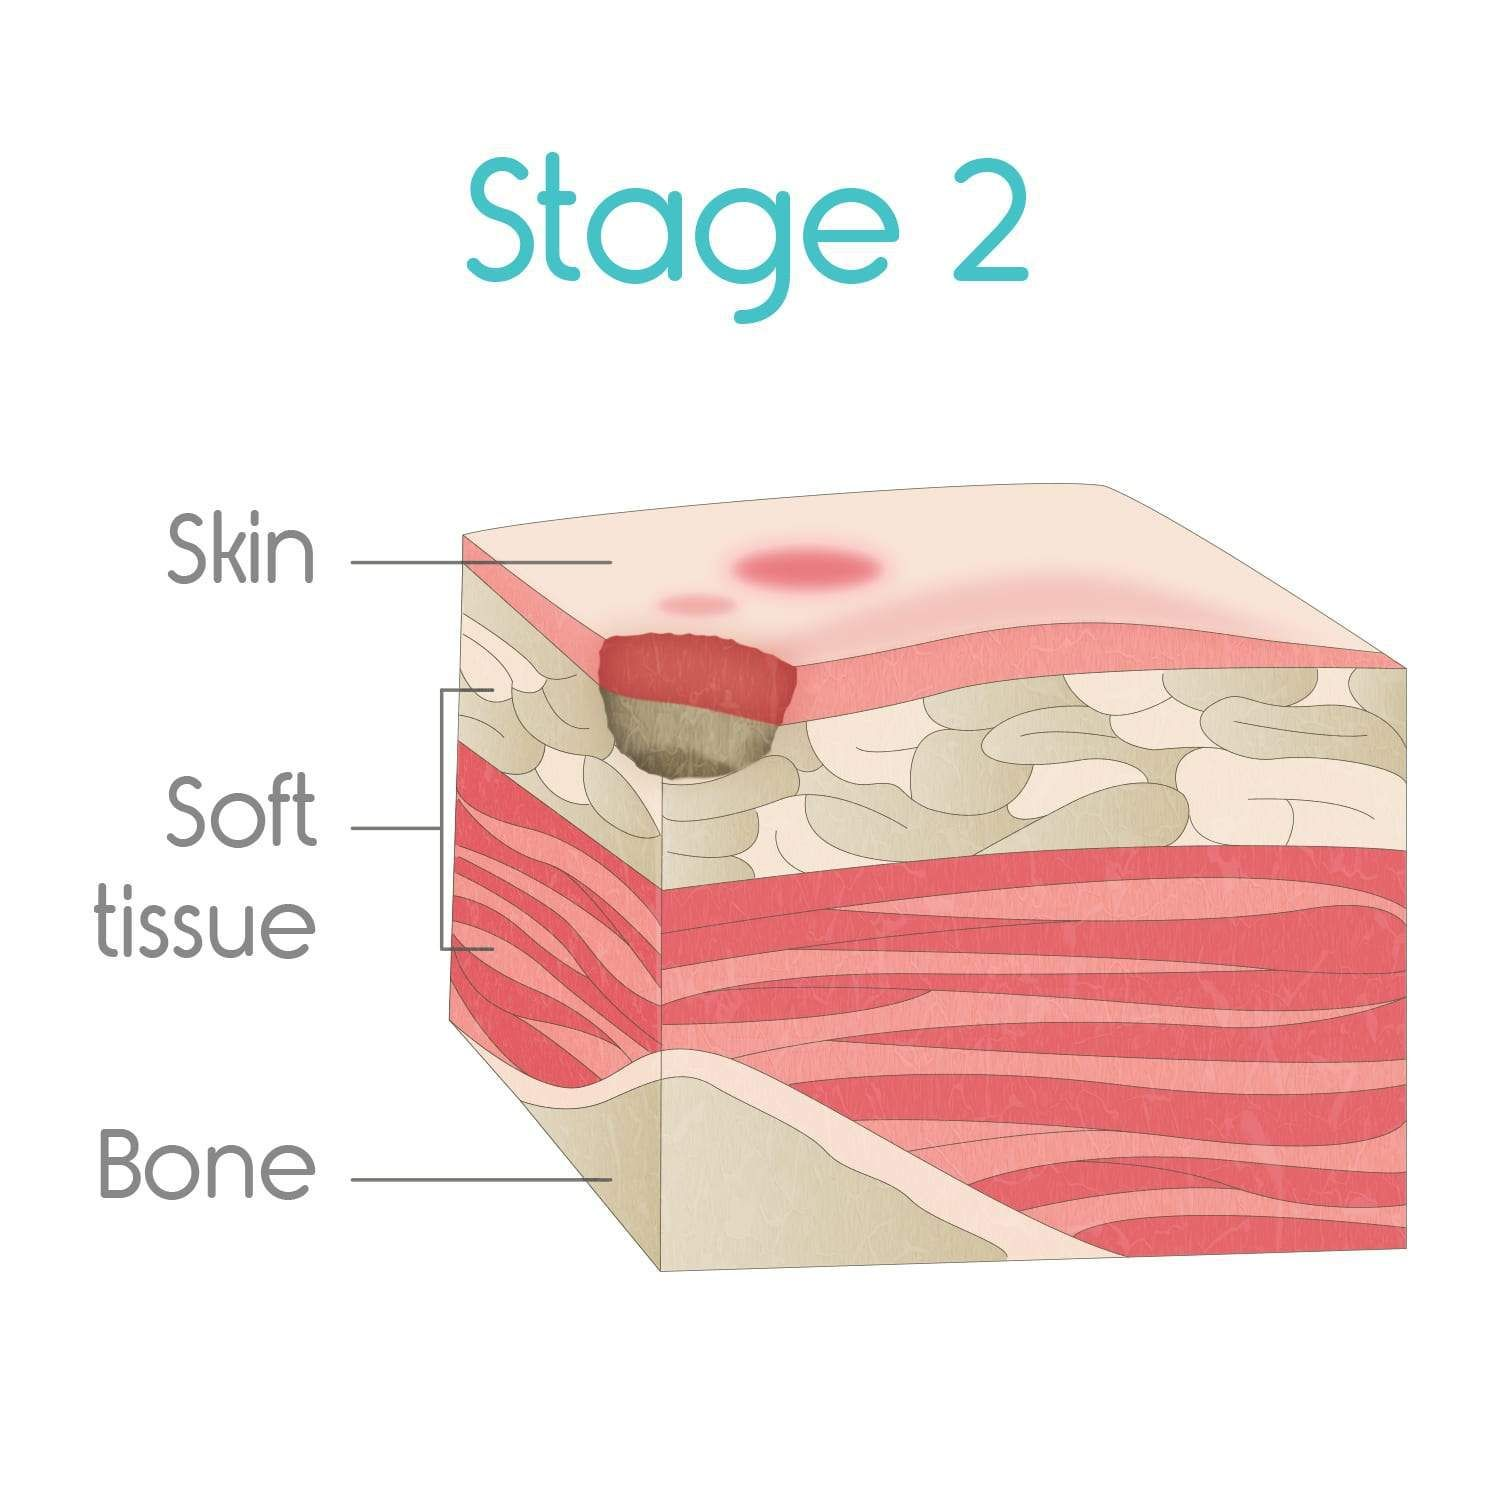 stage two bed sores Bed sores, Soreness, Pressure ulcer